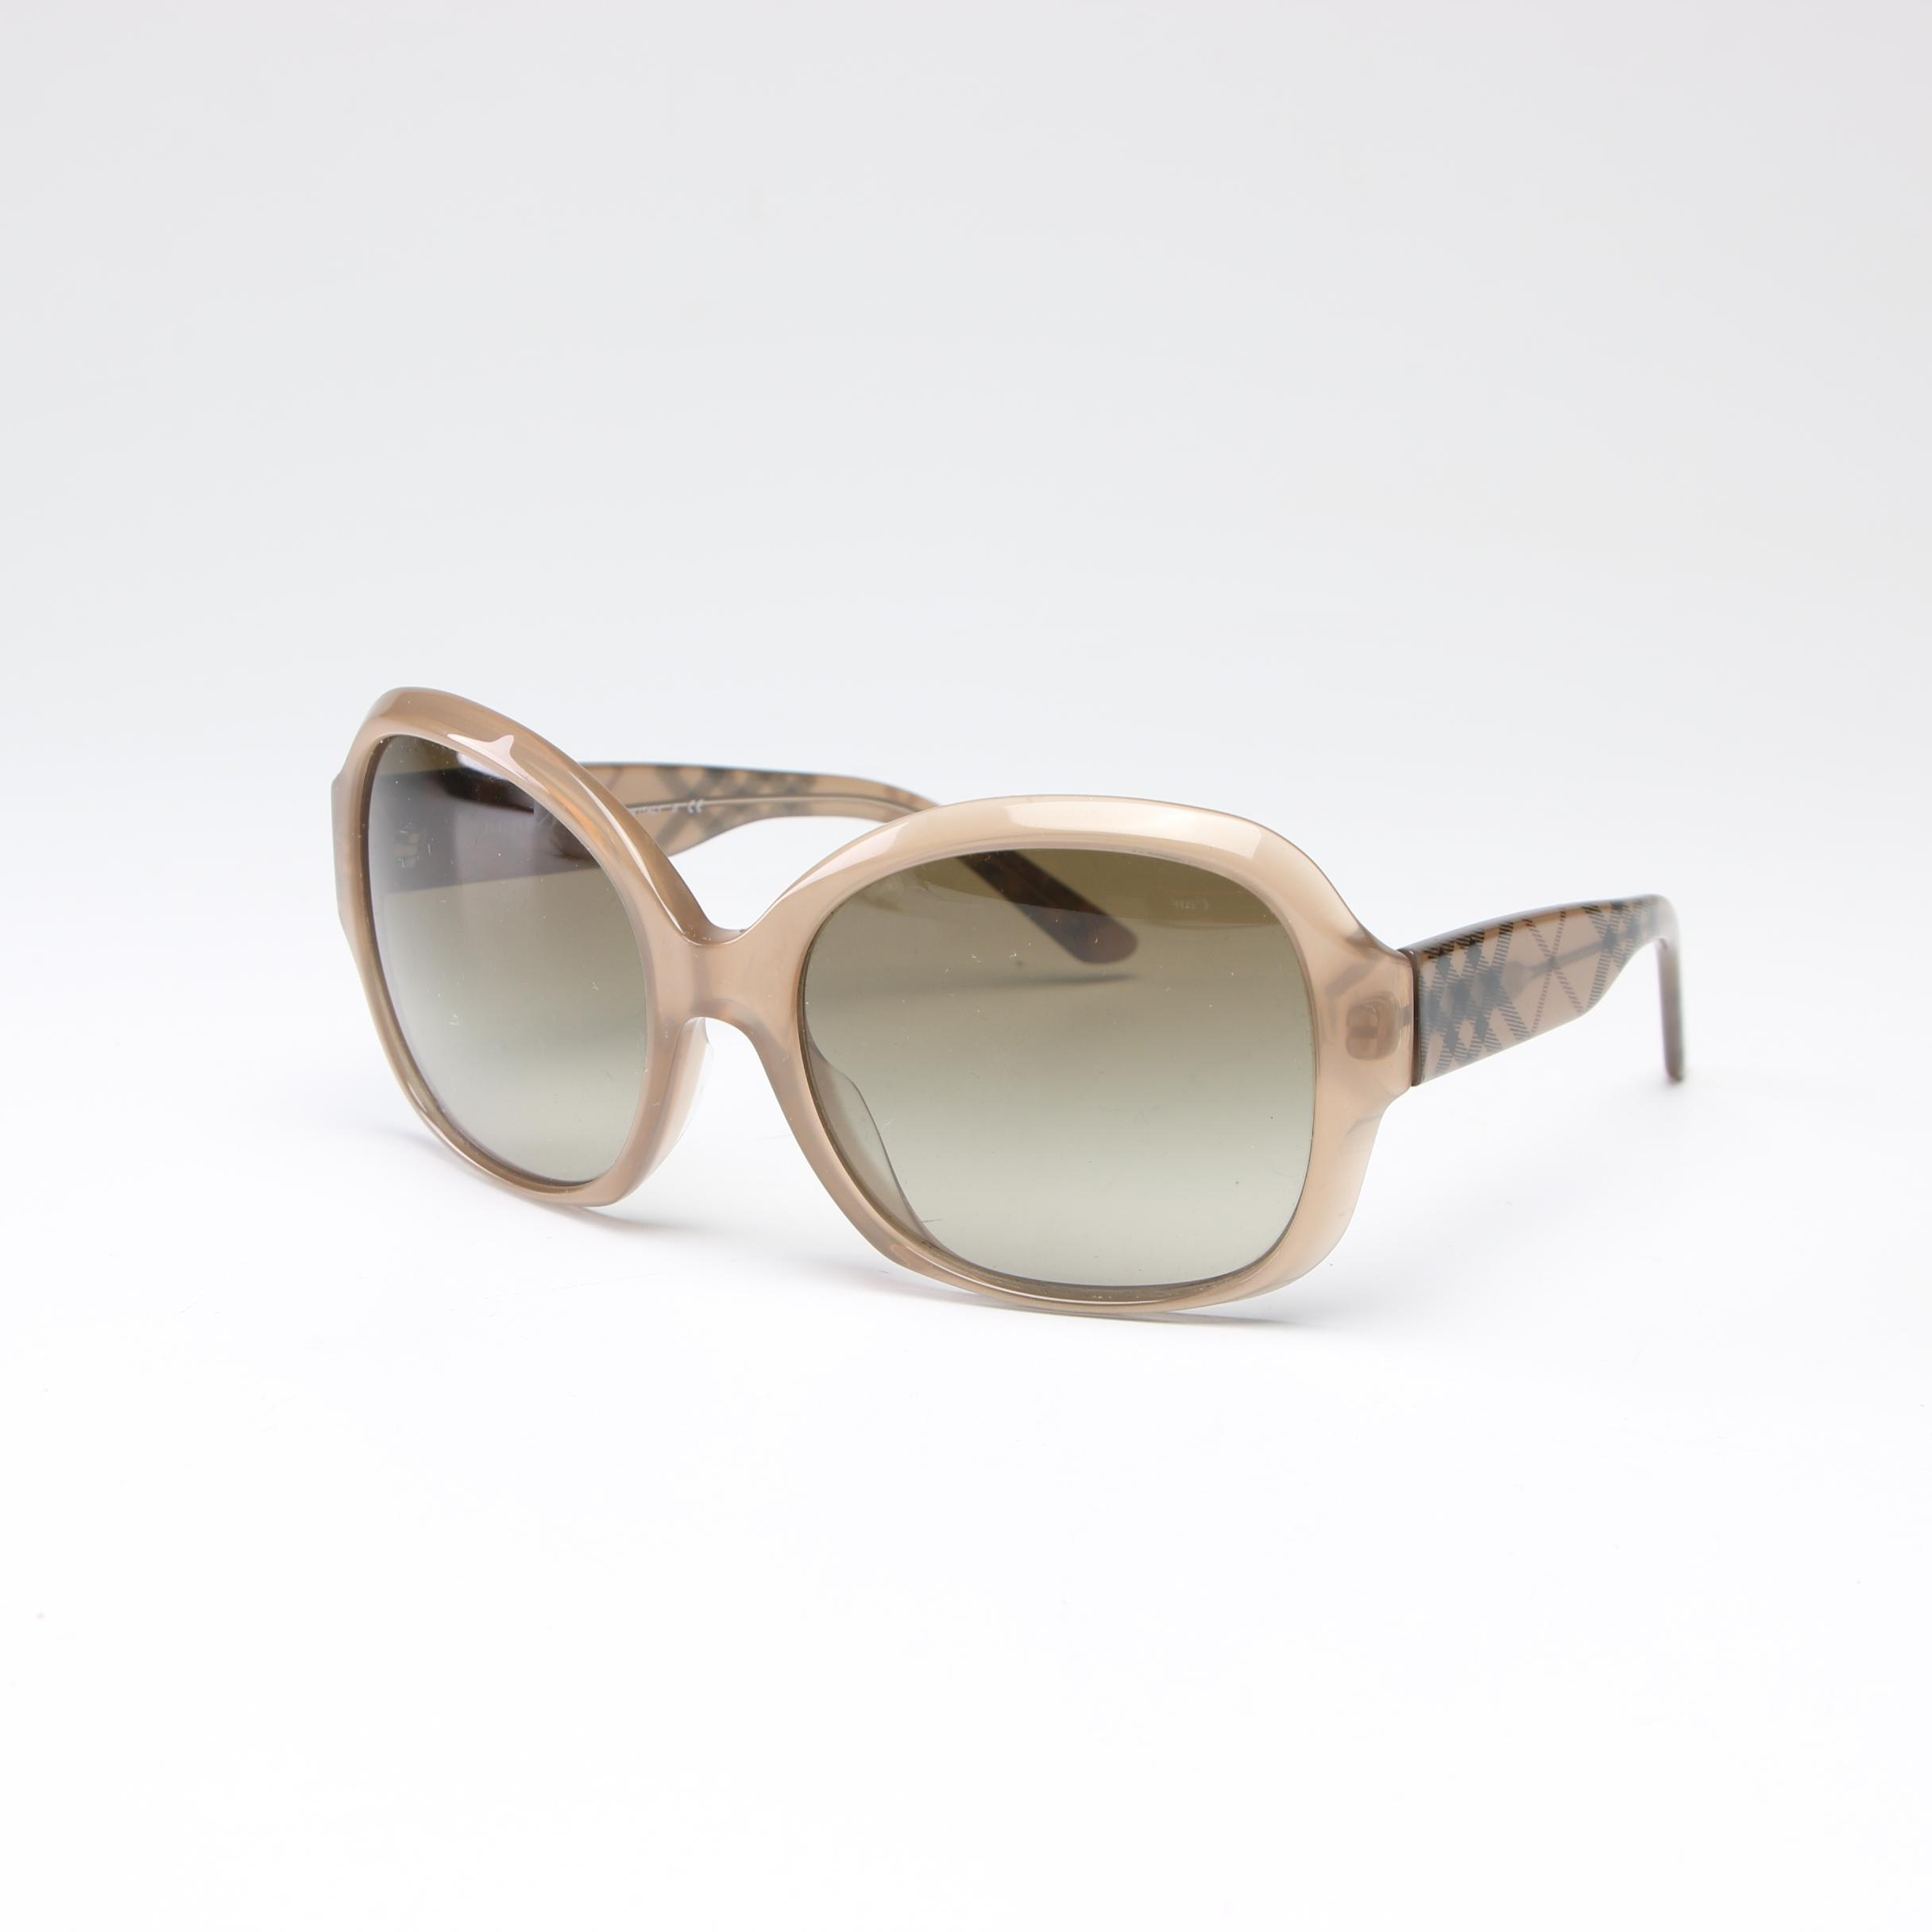 "Burberry ""Haymarket Check"" Sunglasses with Case, Made in Italy"